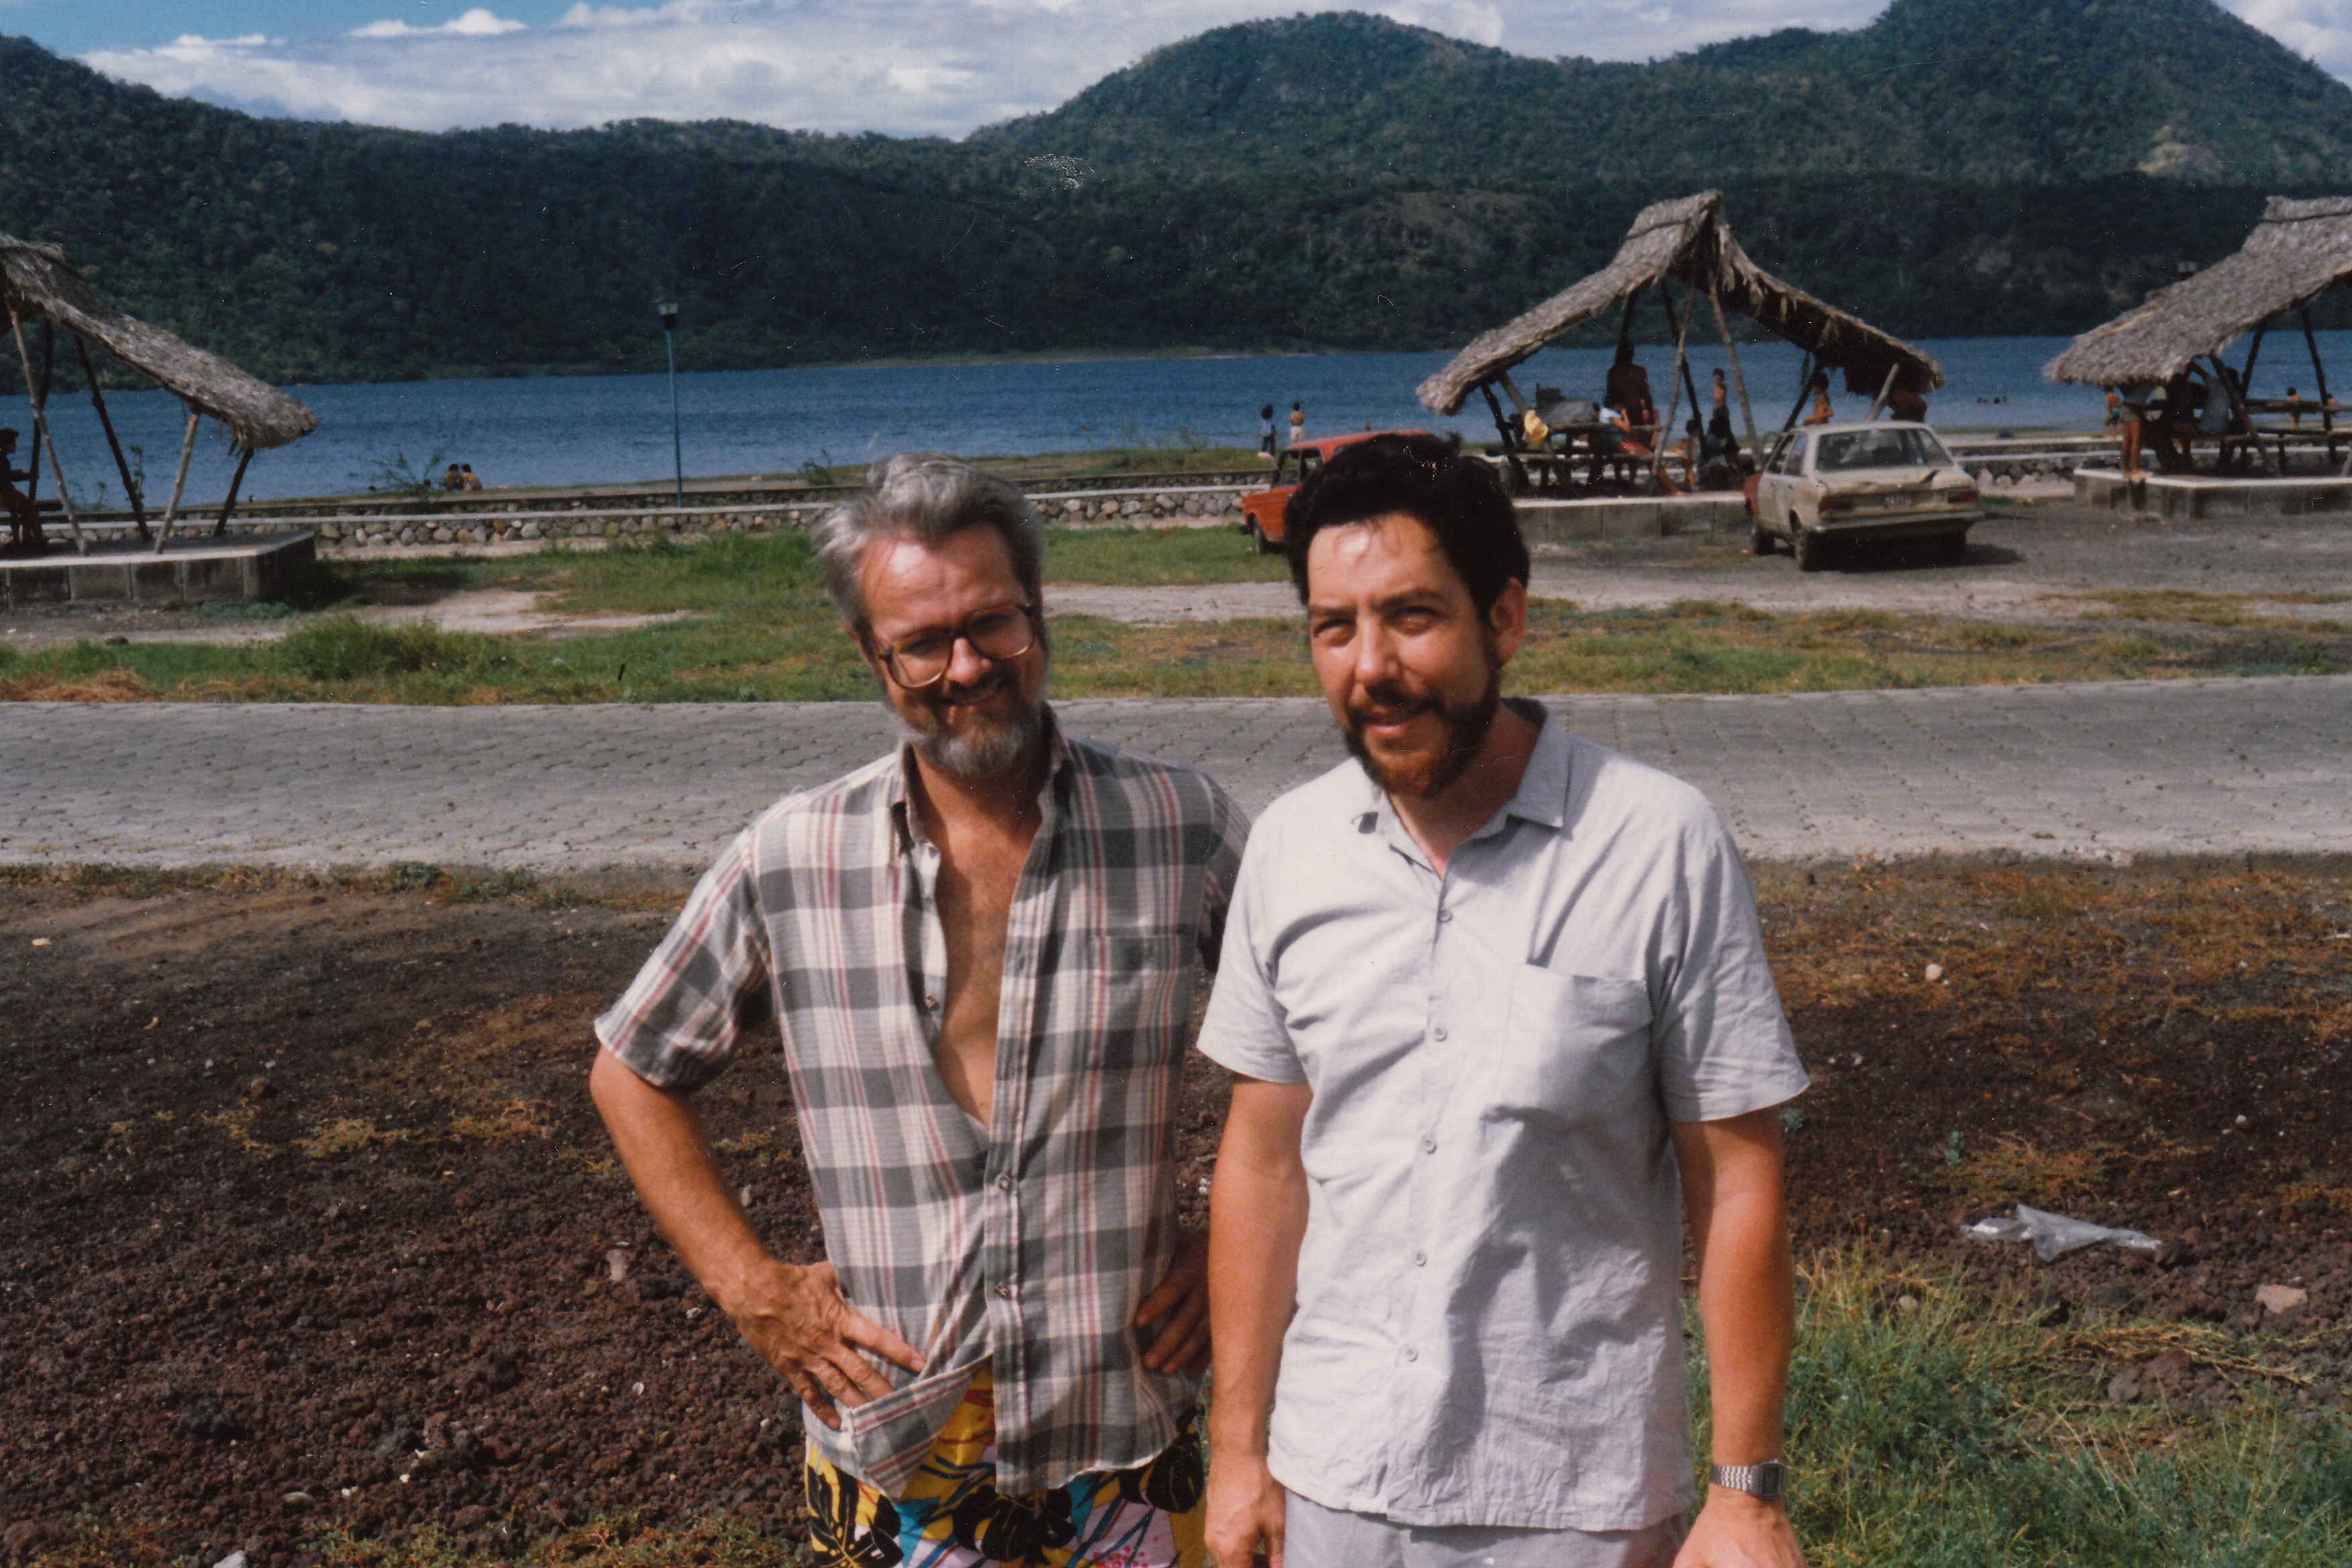 Figure 20.4. Alan in Managua, Nicaragua, with John Vandermeer during the Contra War, December 1986. Credit: Personal collection of Alan M. Wald.